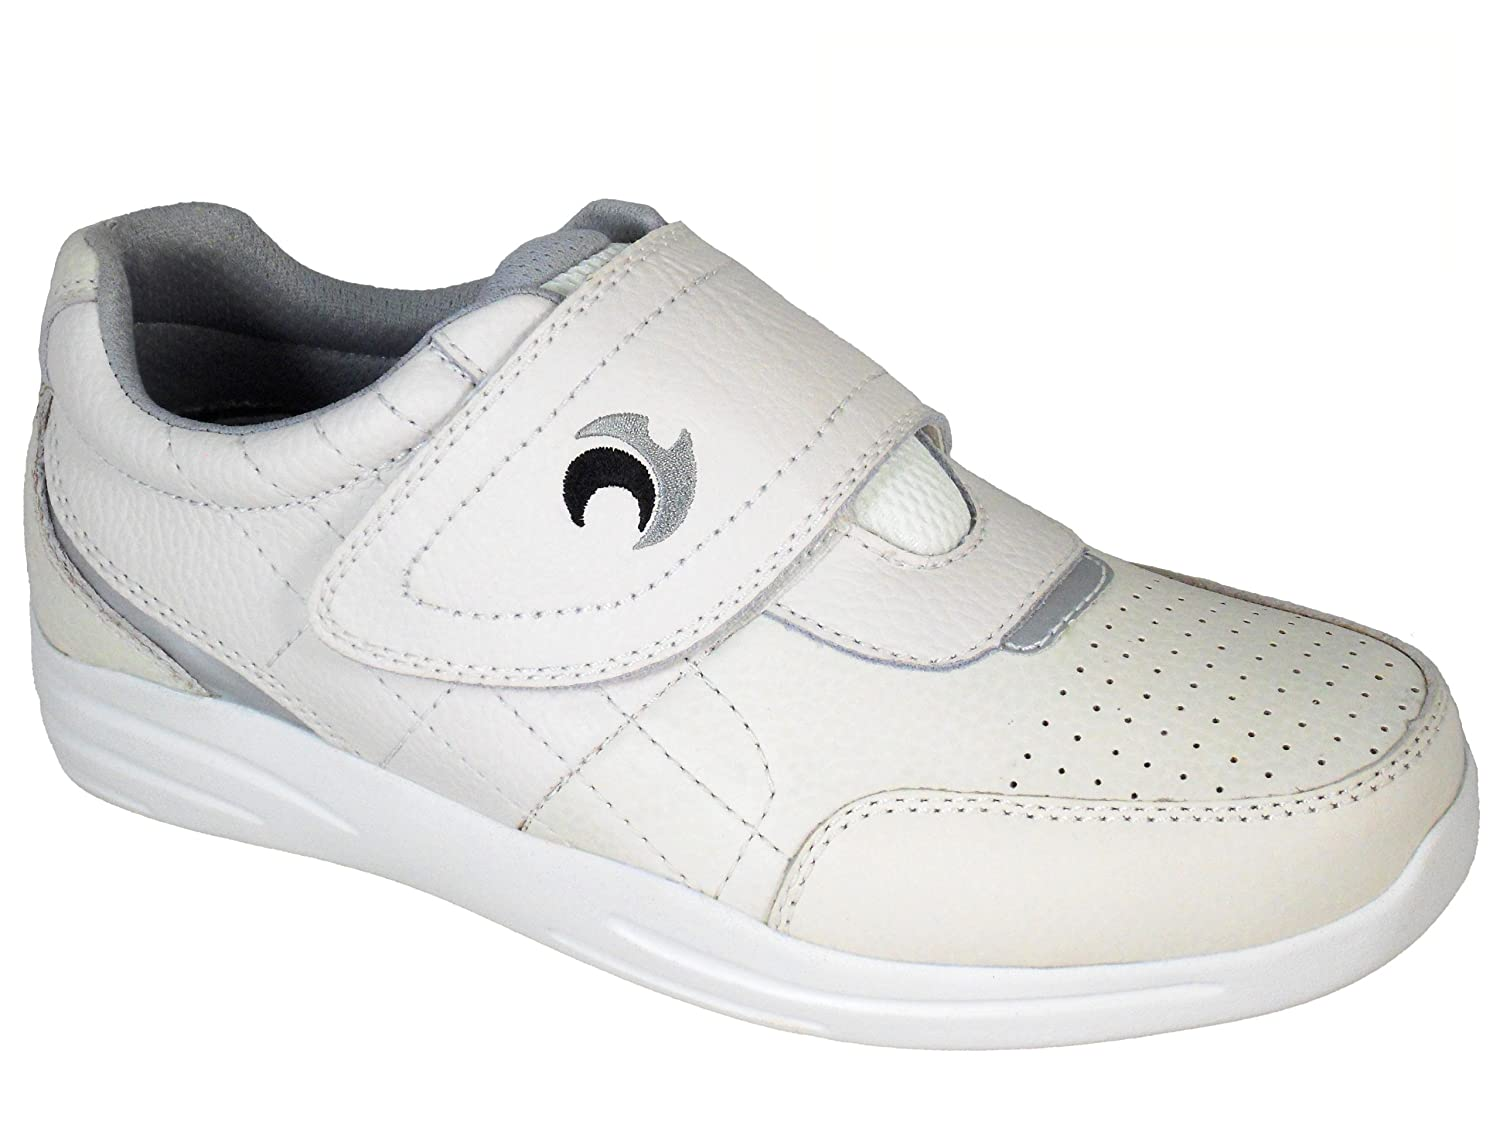 60969664739 Henselite Men s Pro Sport Velcro Quality Leather Lawn Bowls Shoes Sizes 6  to 13  Amazon.co.uk  Shoes   Bags